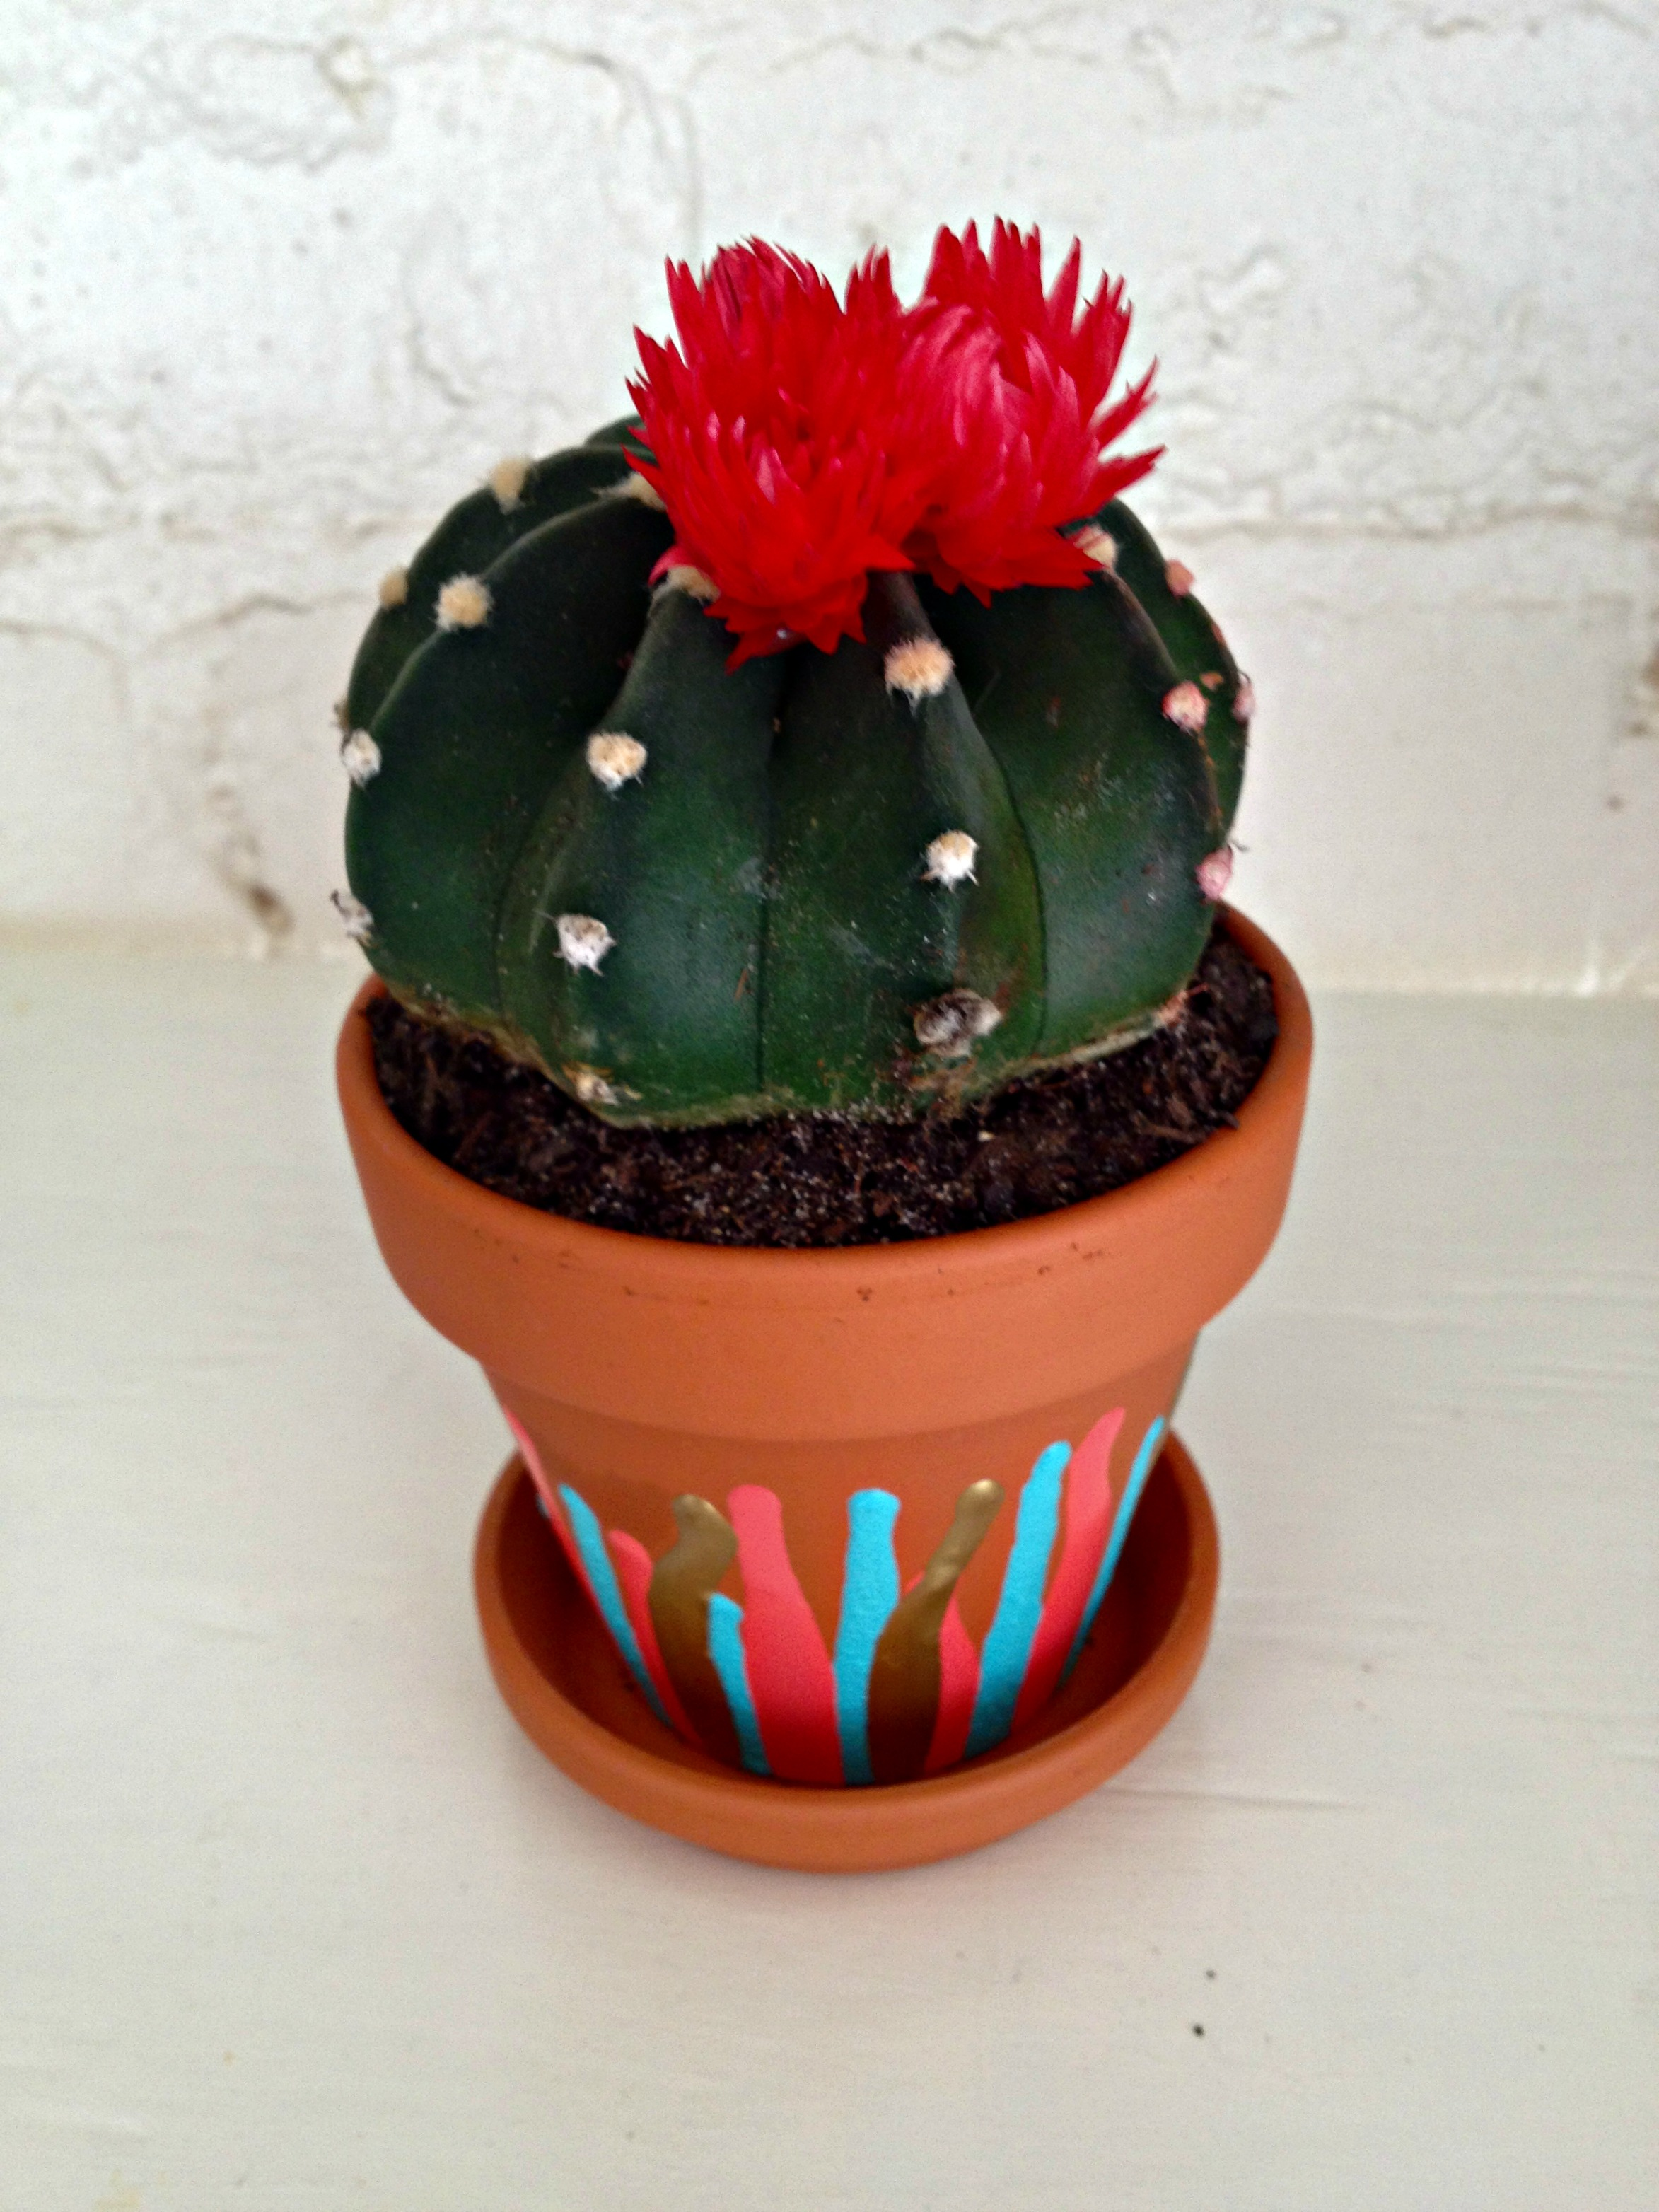 Drip Drop Painted Terra Cotta Pot Changing My Marbles